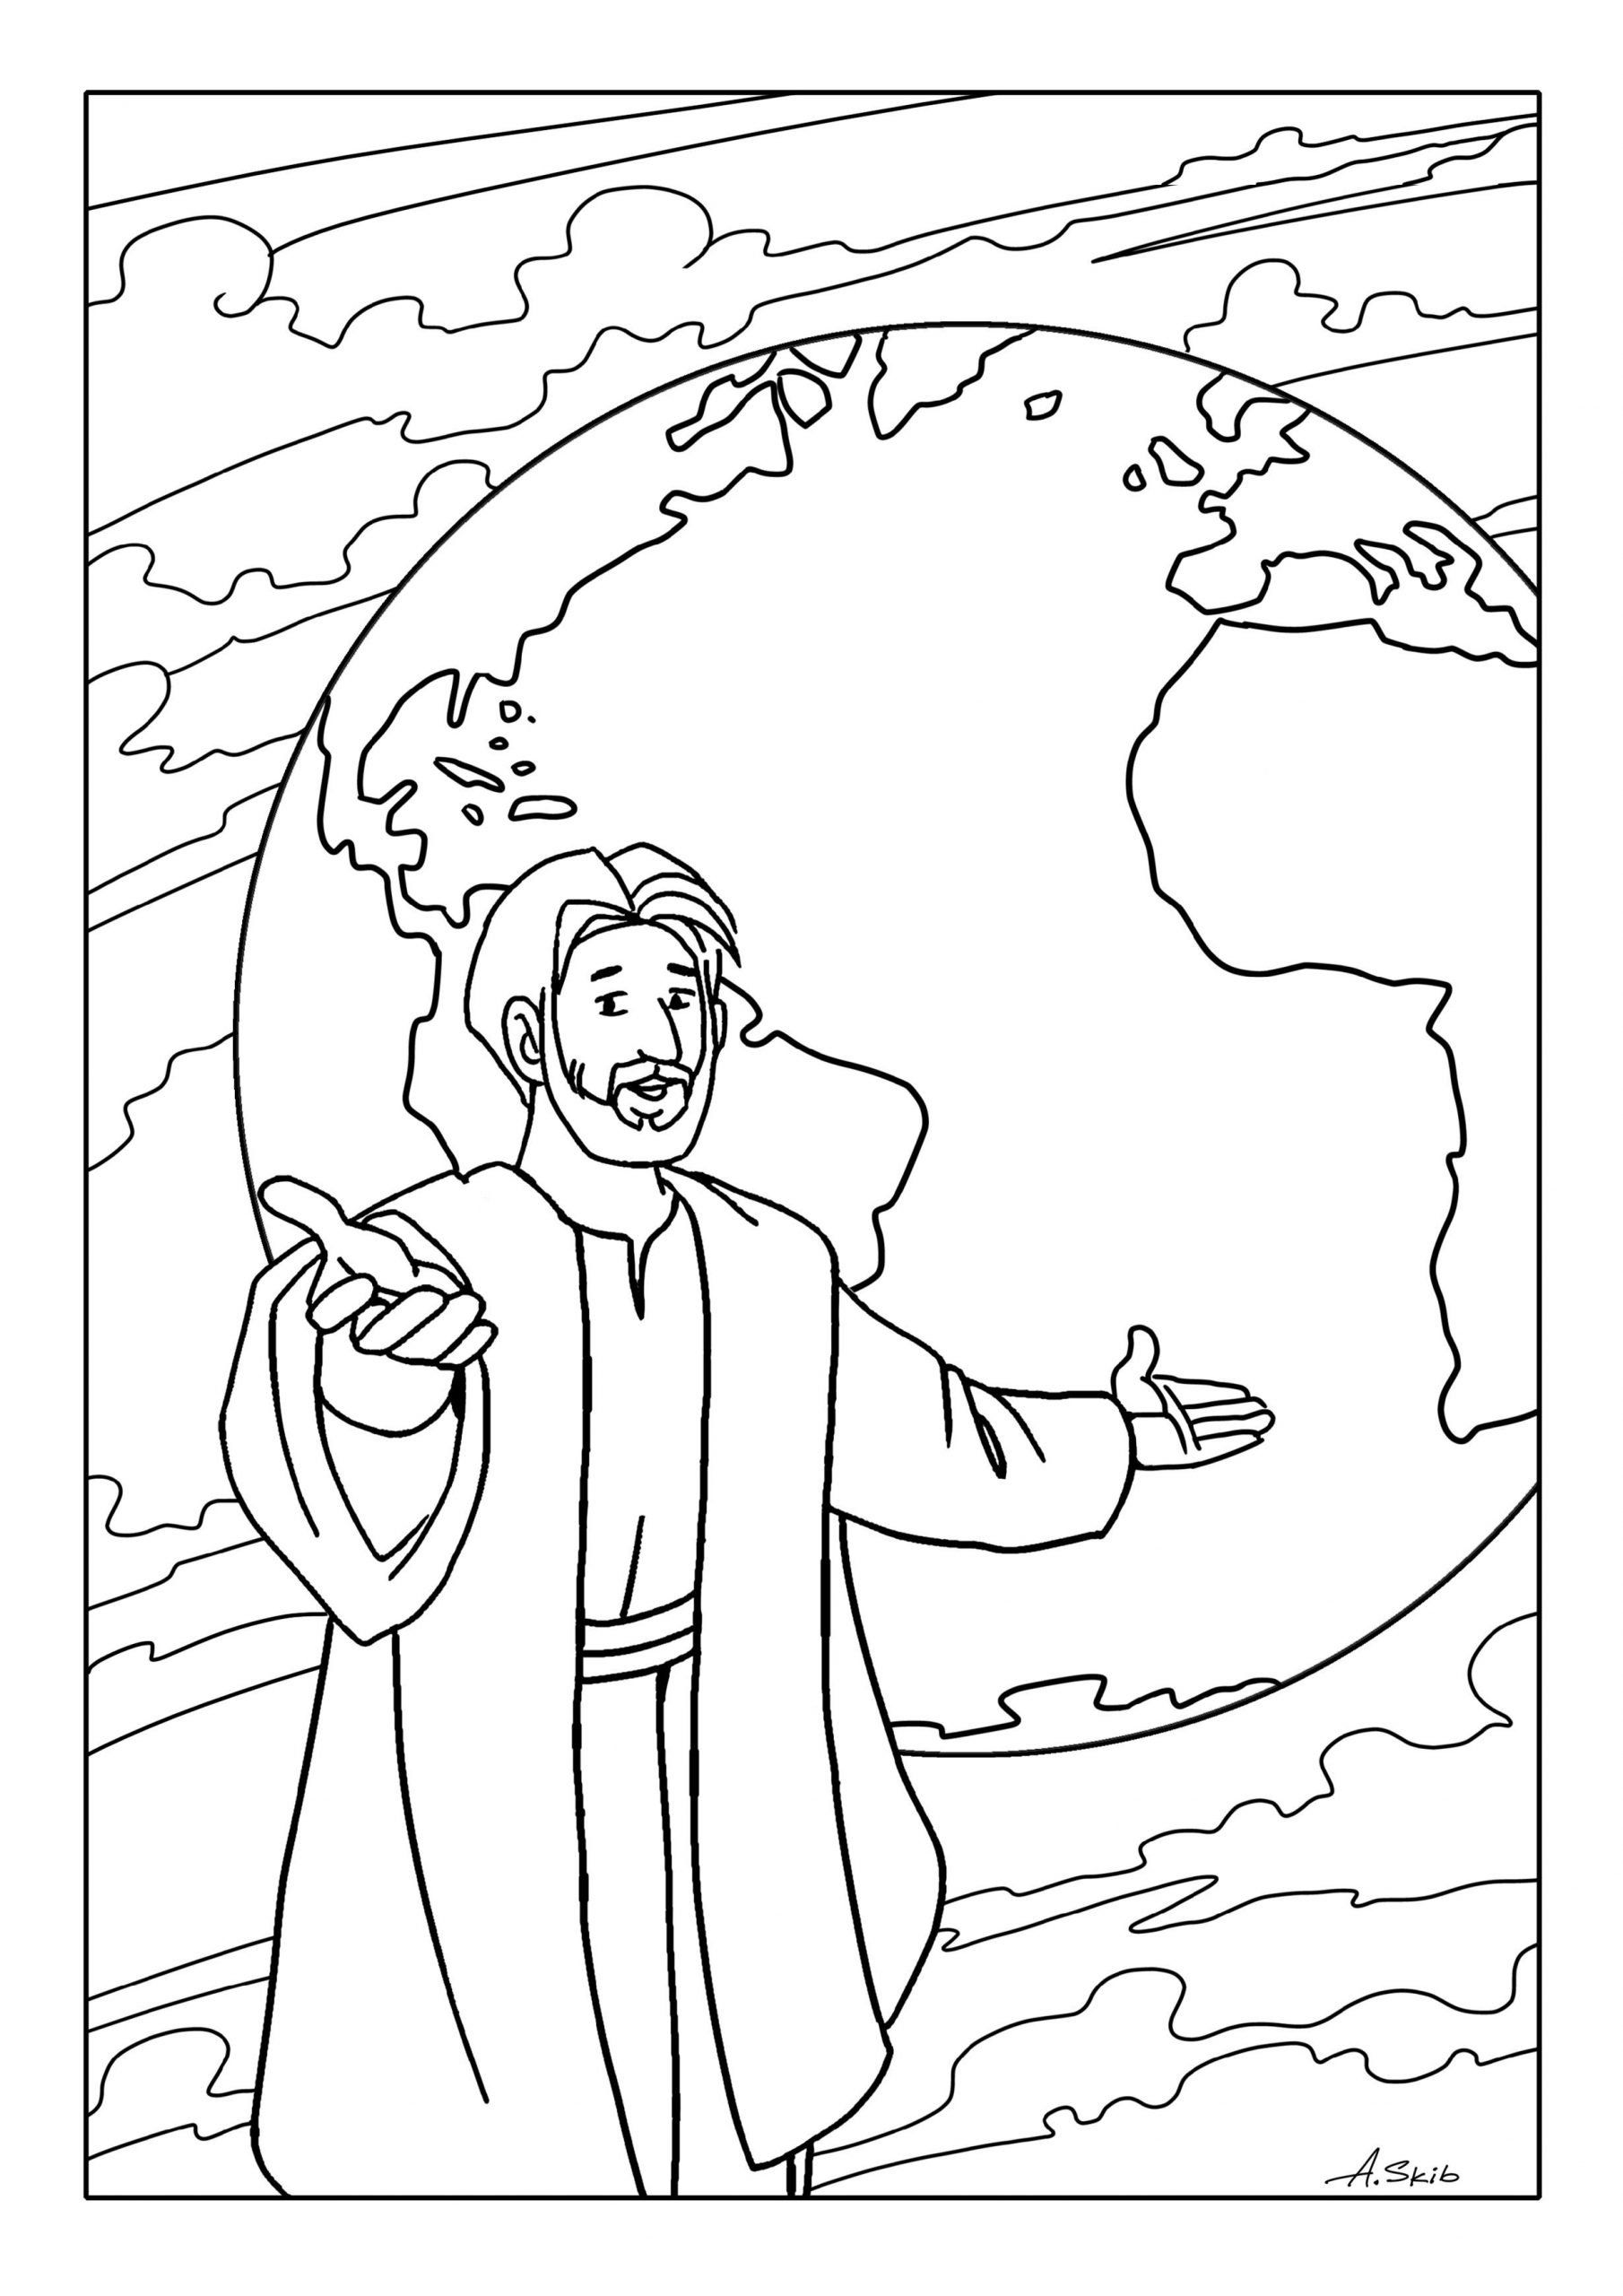 Bible Coloring Book for Kids Free Coloring Pages the Great Mission